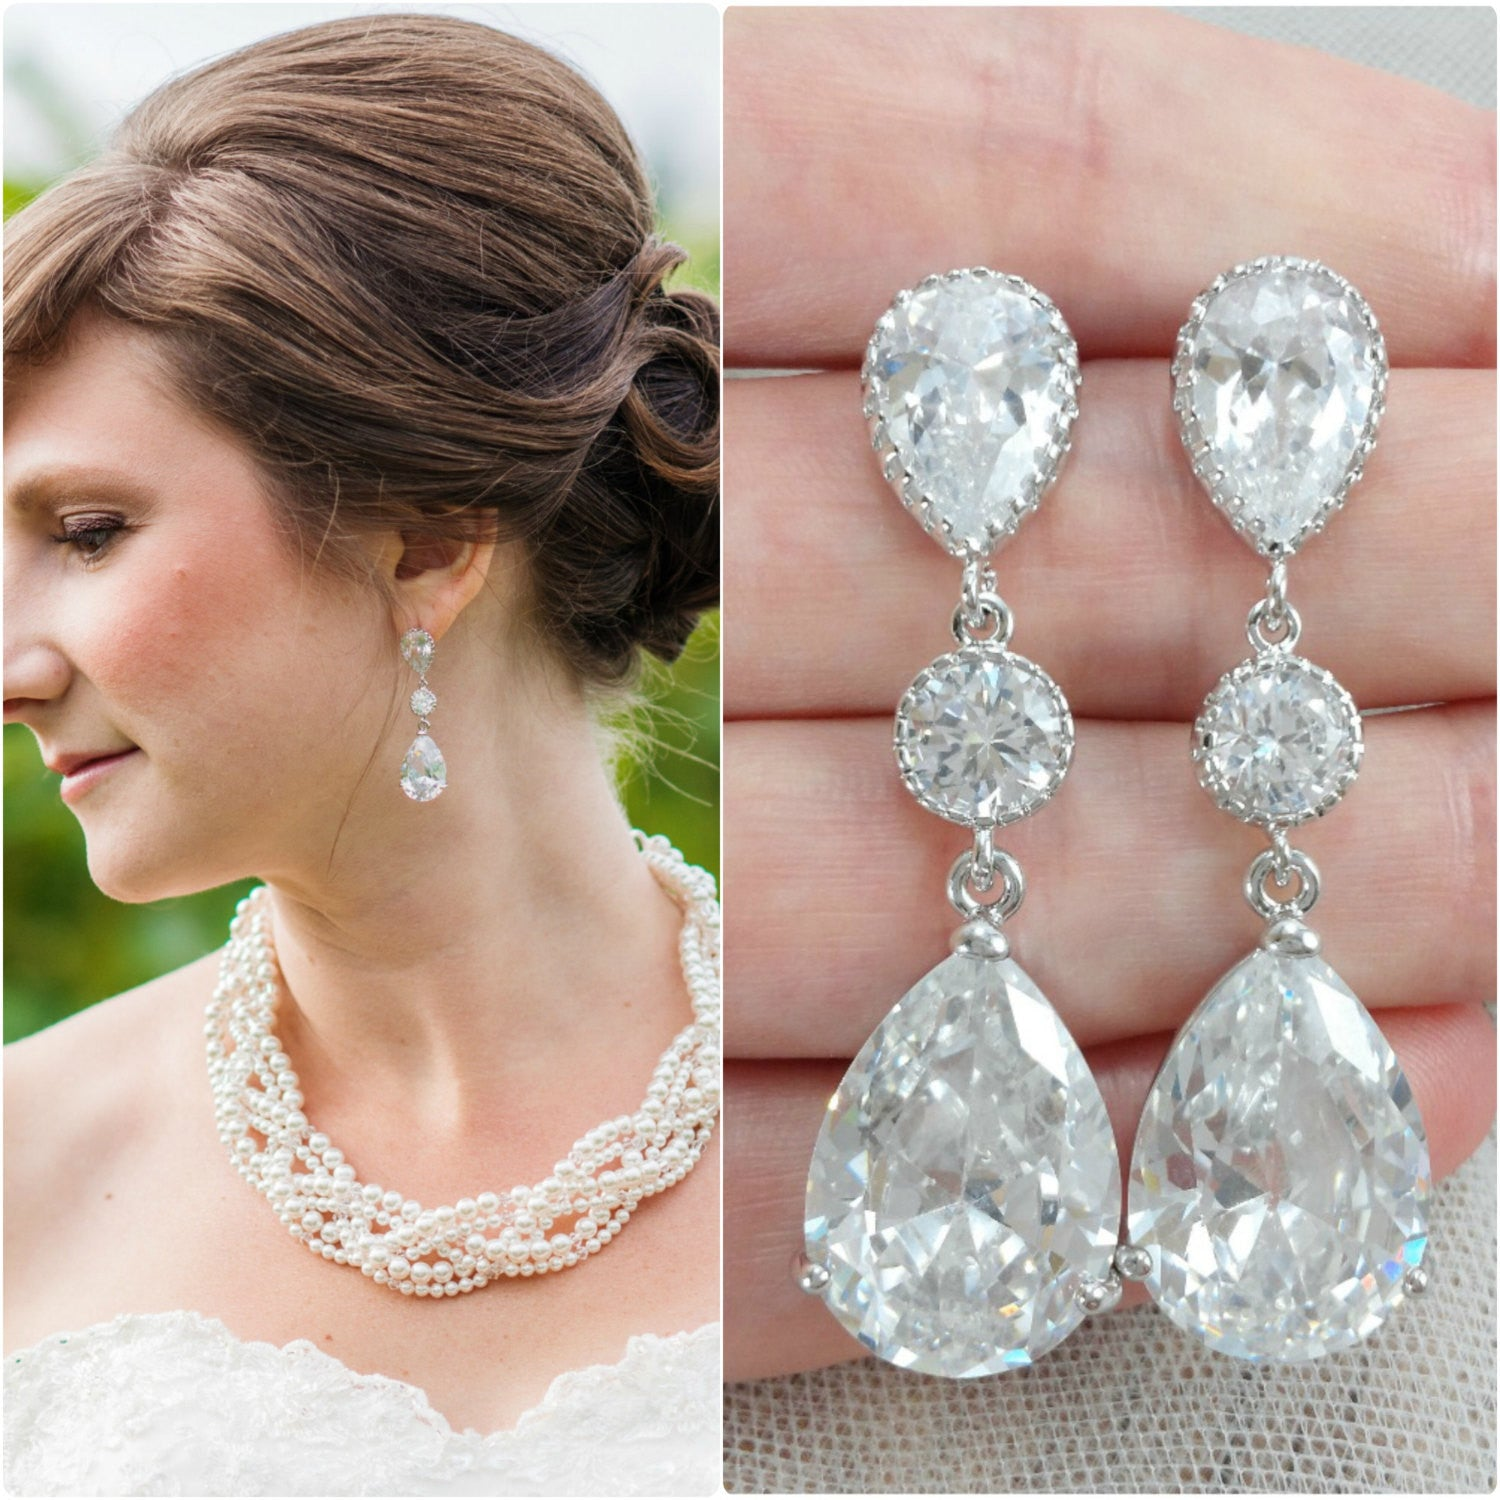 Cubic Zirconia Statement Earrings For A Wedding Dress